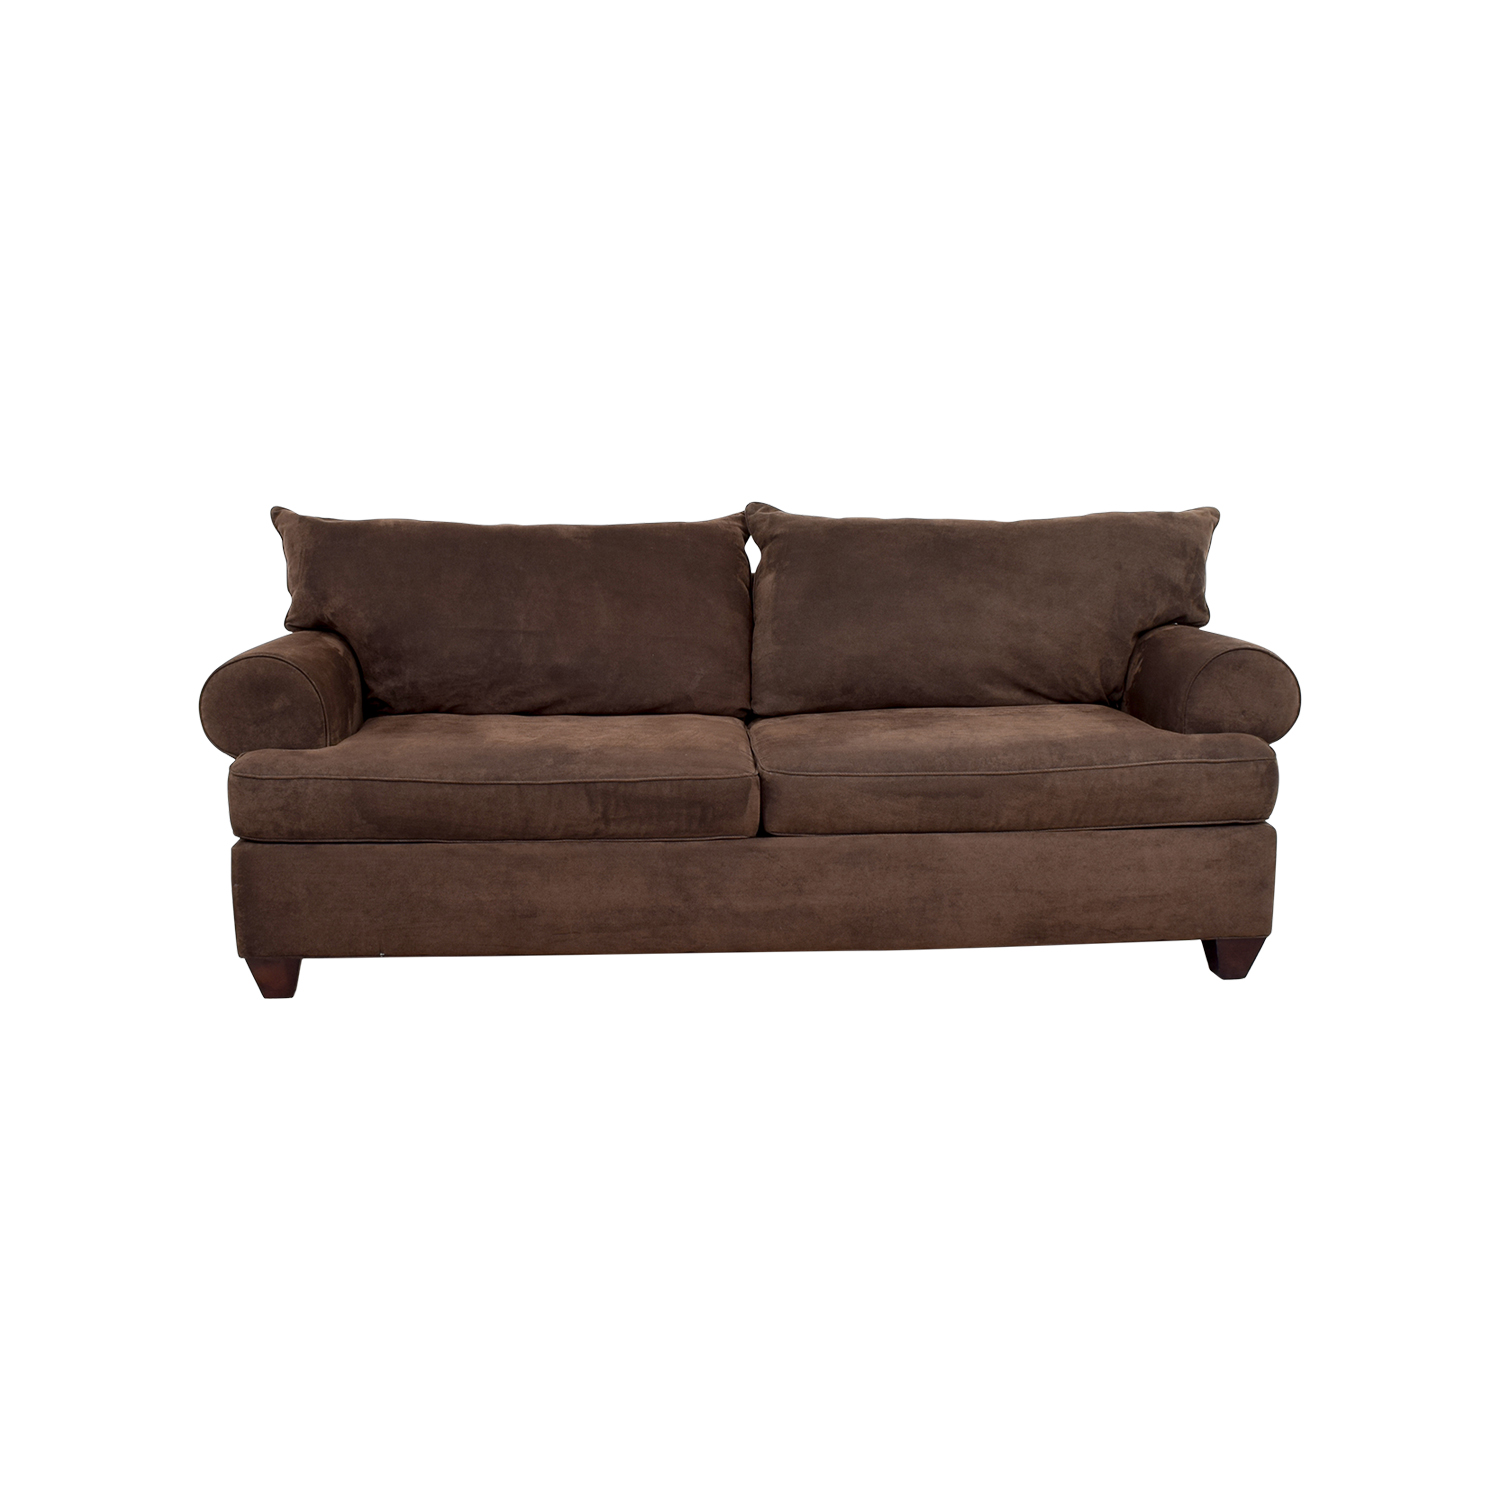 47% OFF - Brown Corduroy Two-Cushion Couch / Sofas